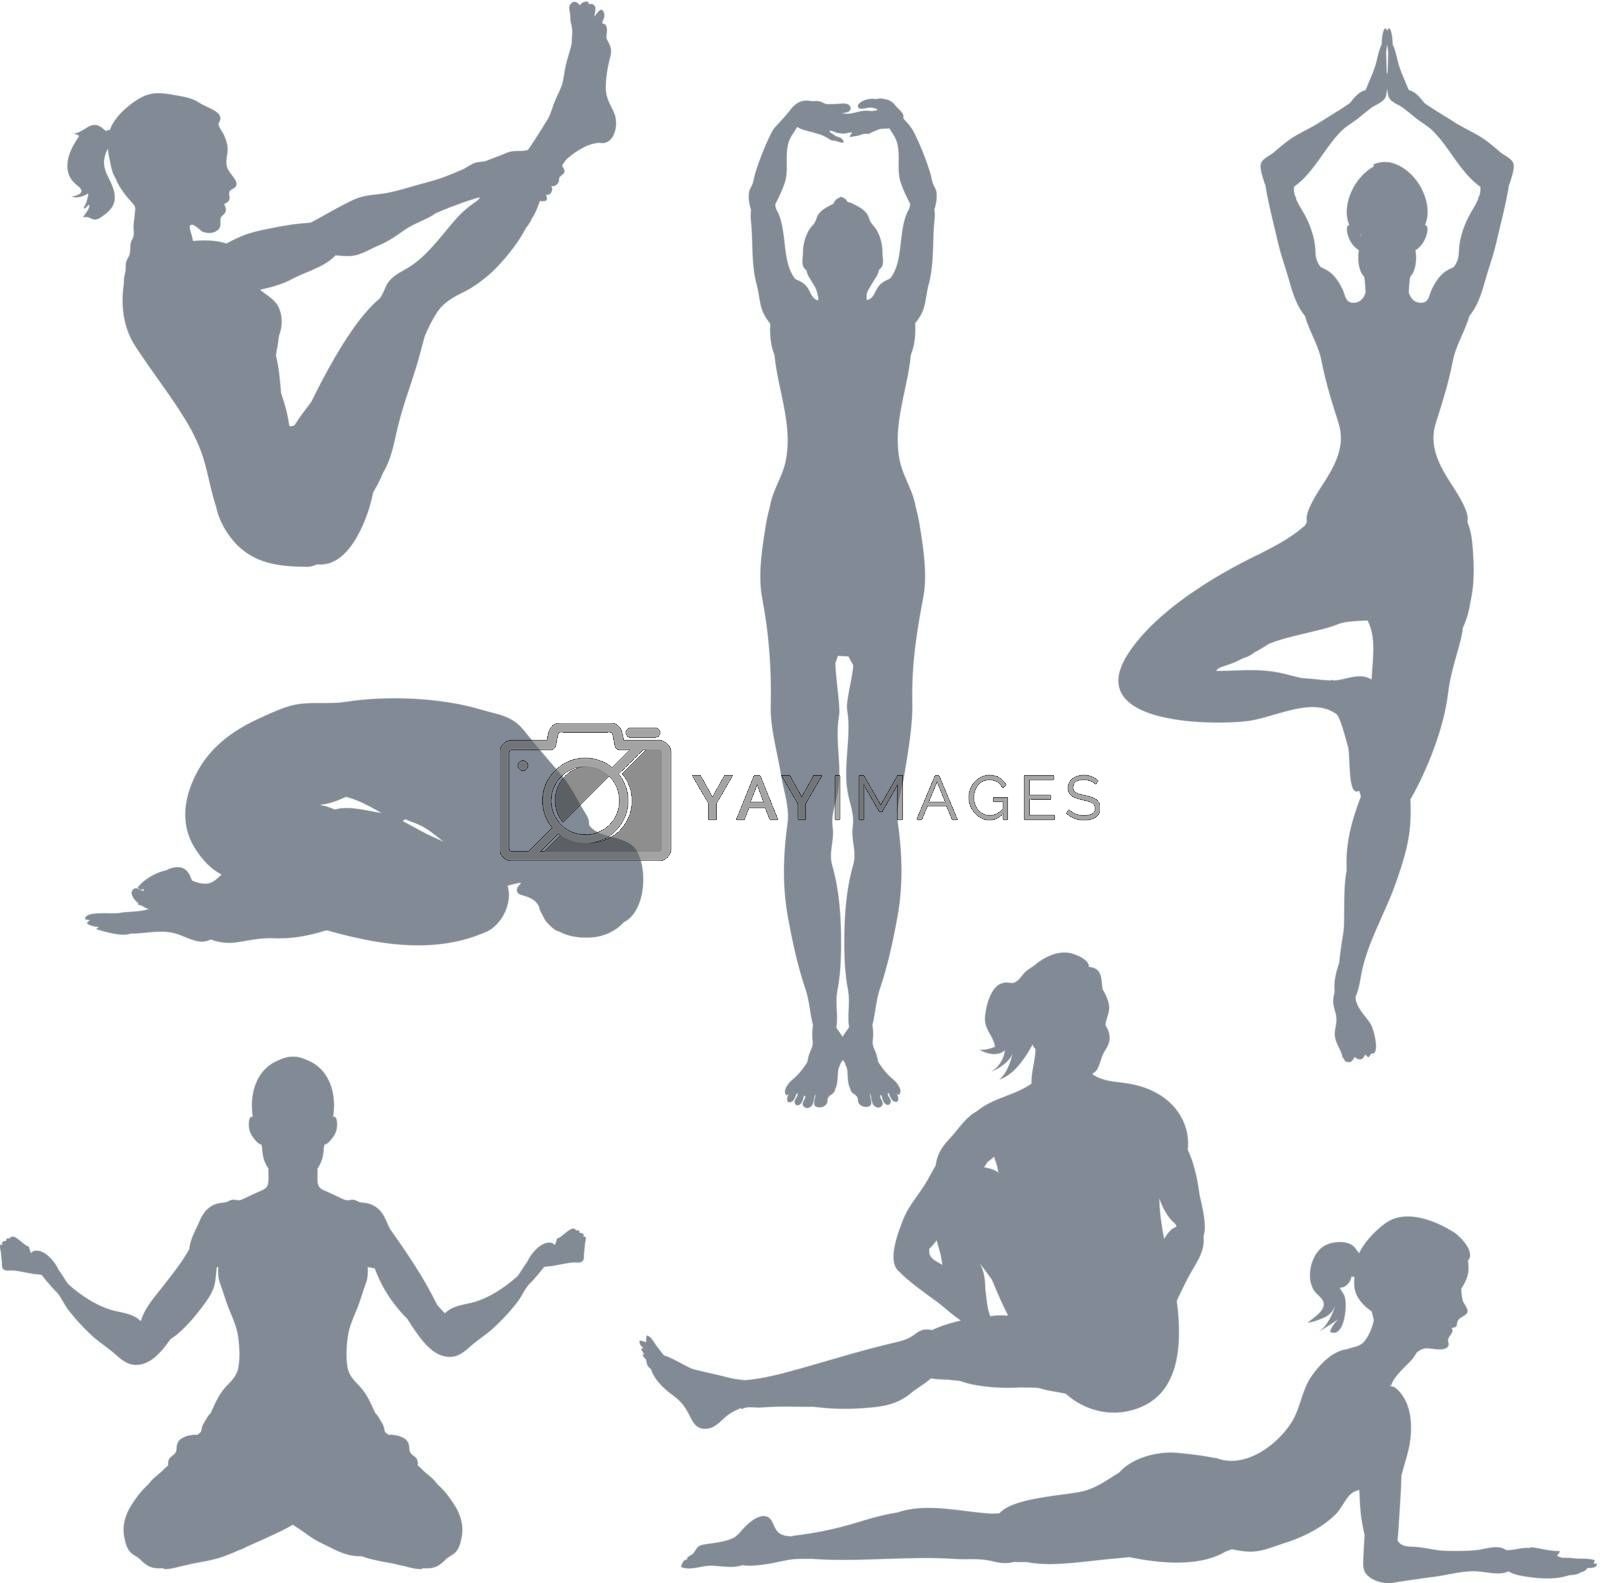 A set of yoga postures silhouettes.